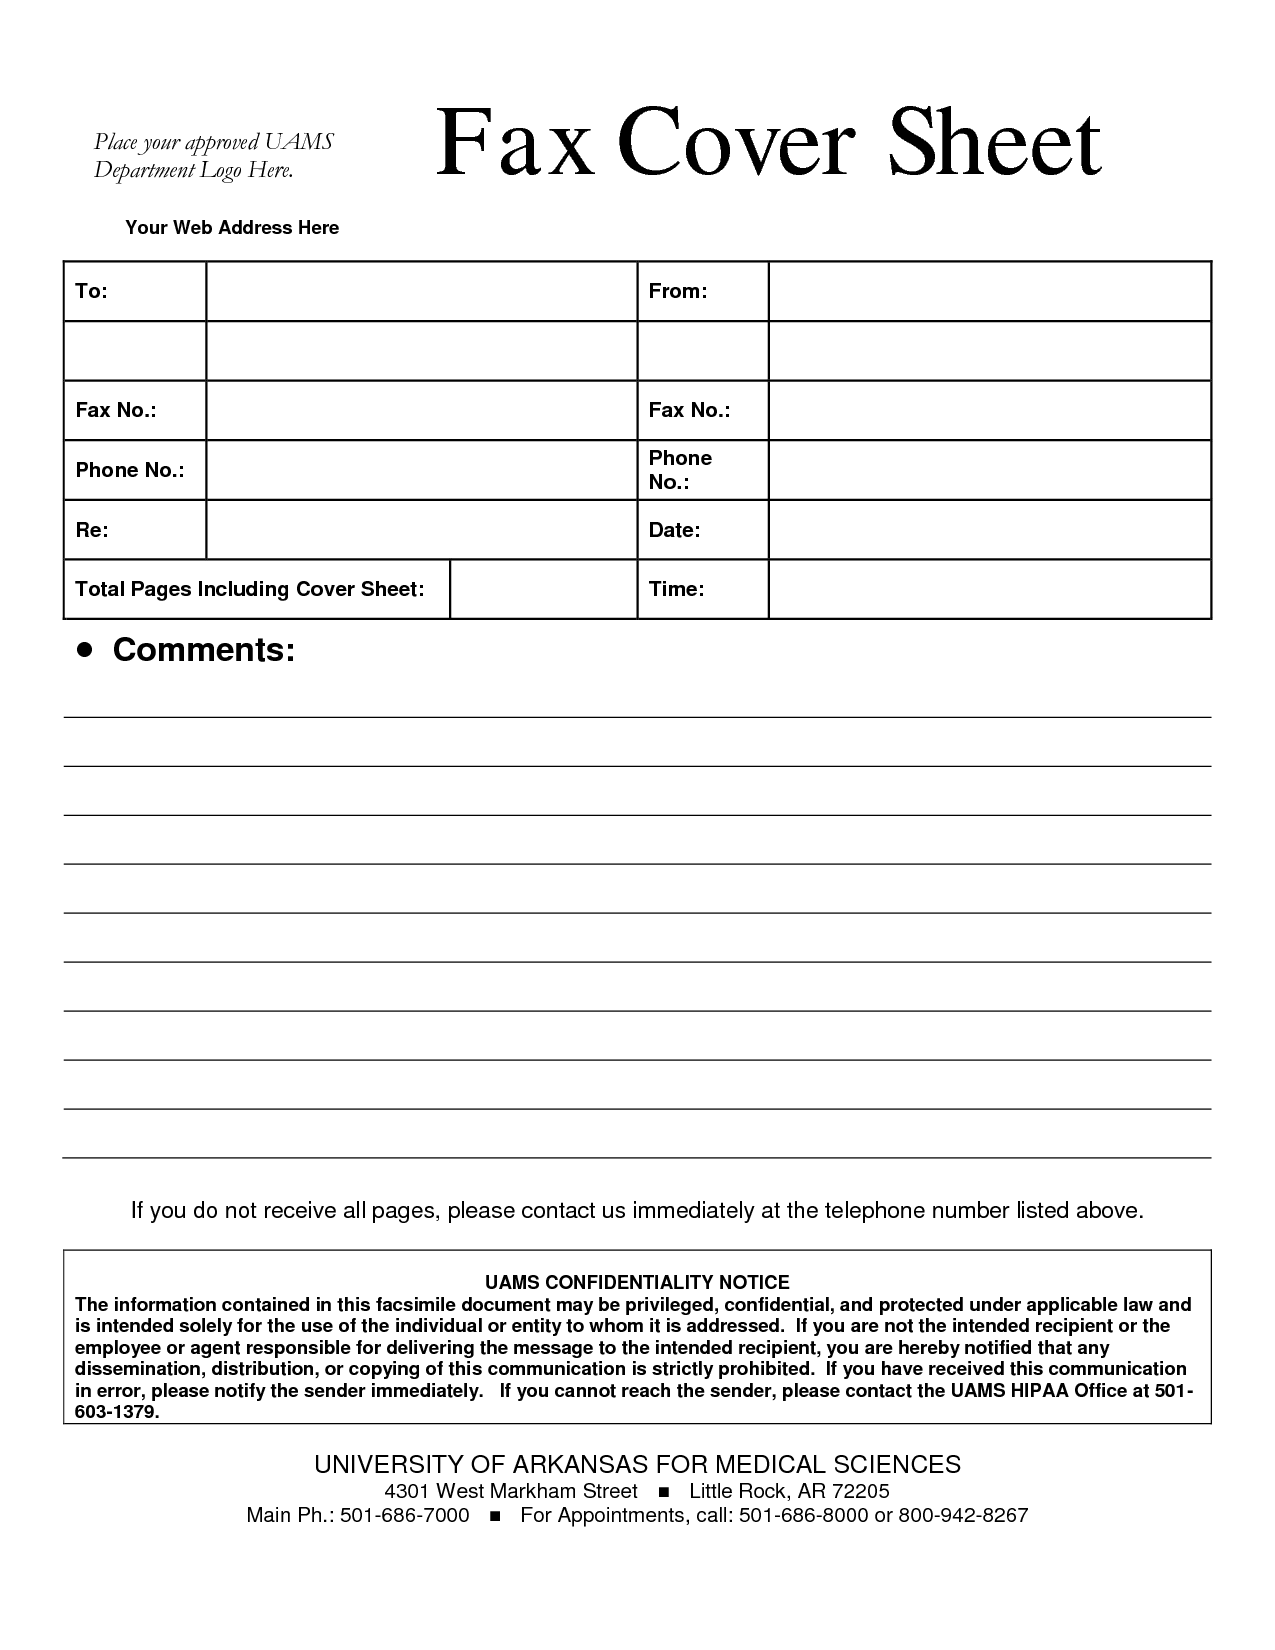 fax cover sheet format 6 fax cover sheet word template itinerary – Fax Cover Word